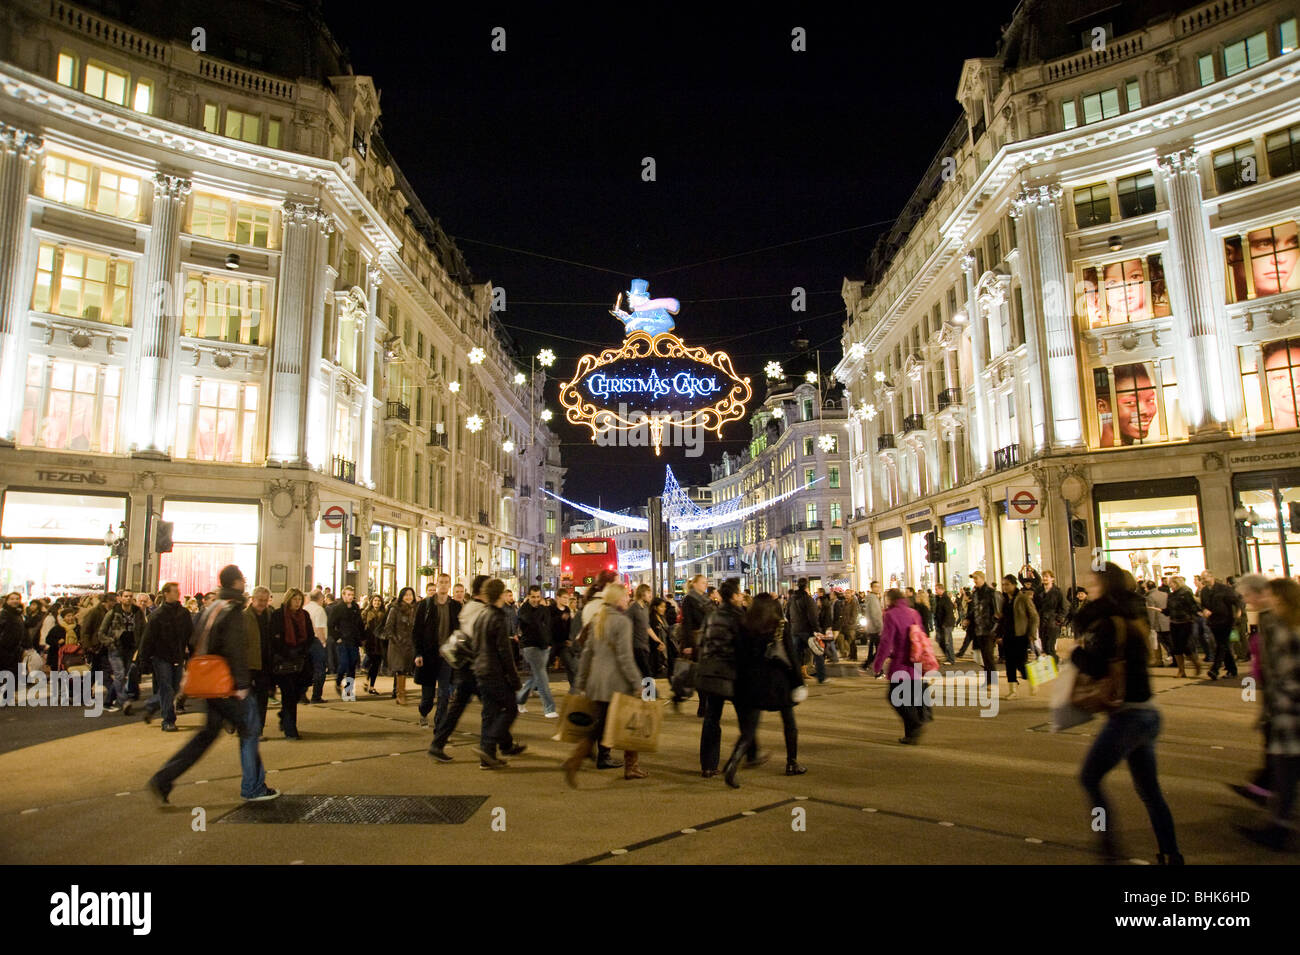 Christmas shoppers at the intersection of Oxford street and Regent street - Stock Image